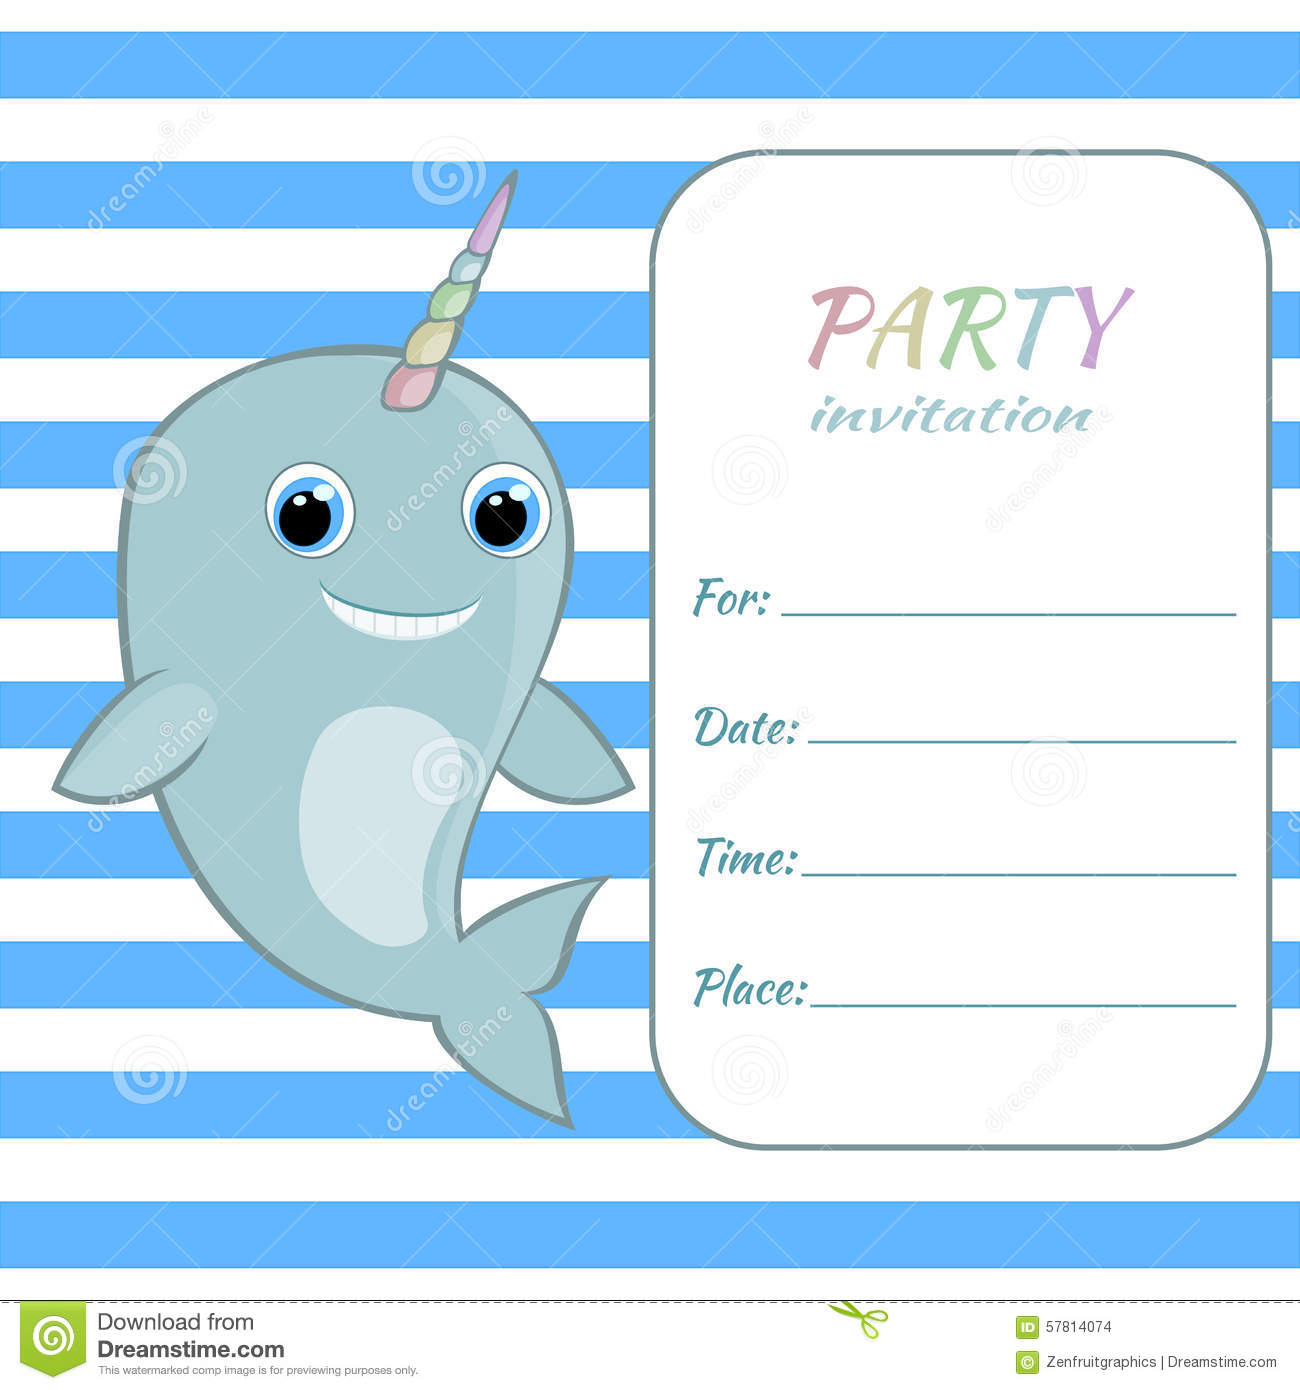 Dolphin invitations birthday free printable invitation template dolphin invitations birthday were beautiful style to make fresh invitations sample filmwisefo Gallery